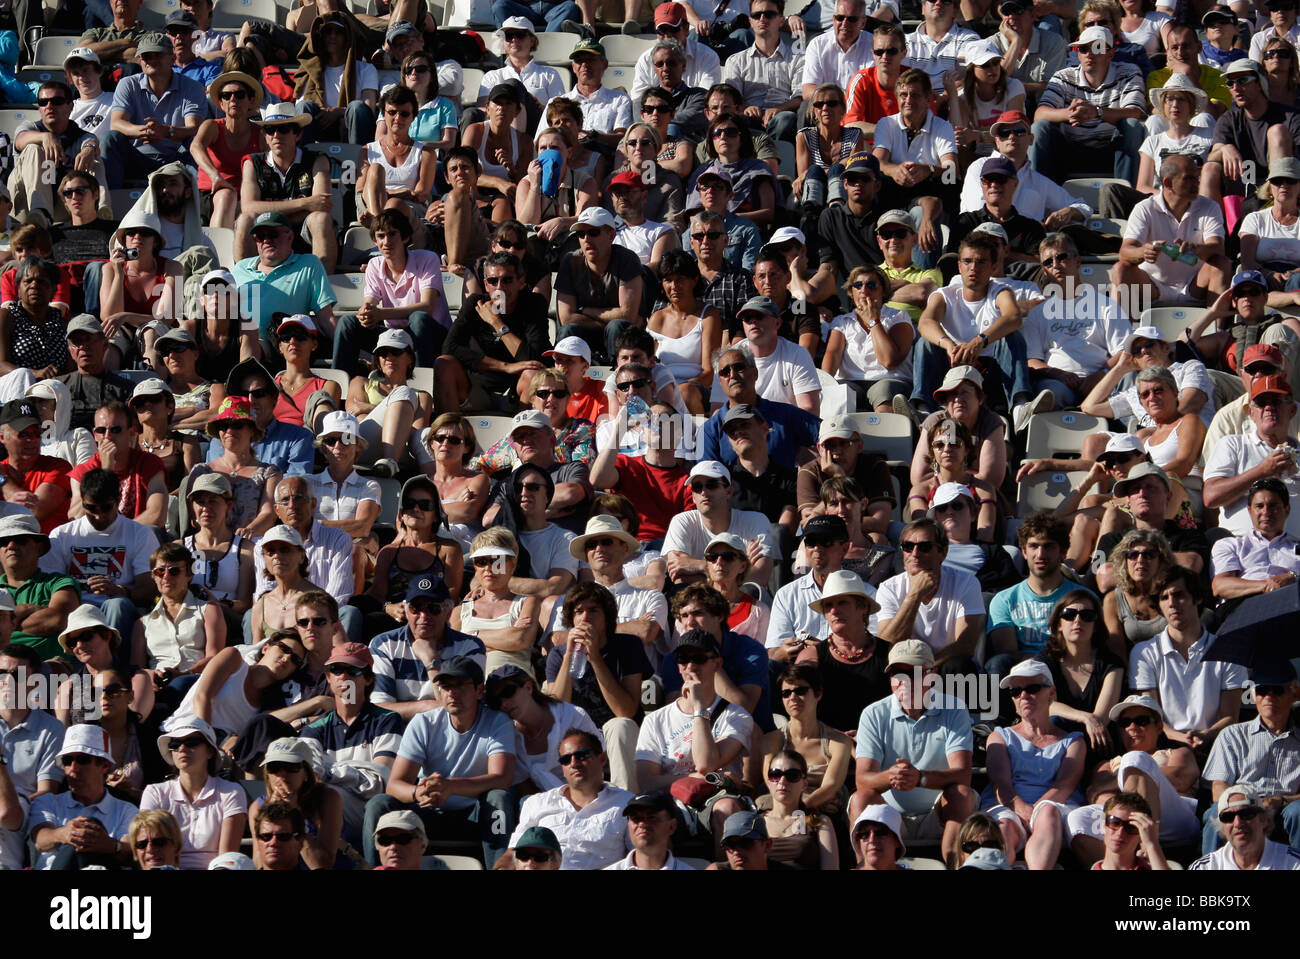 Section of the crowd at the French Open 2009 at Roland Garros - Stock Image